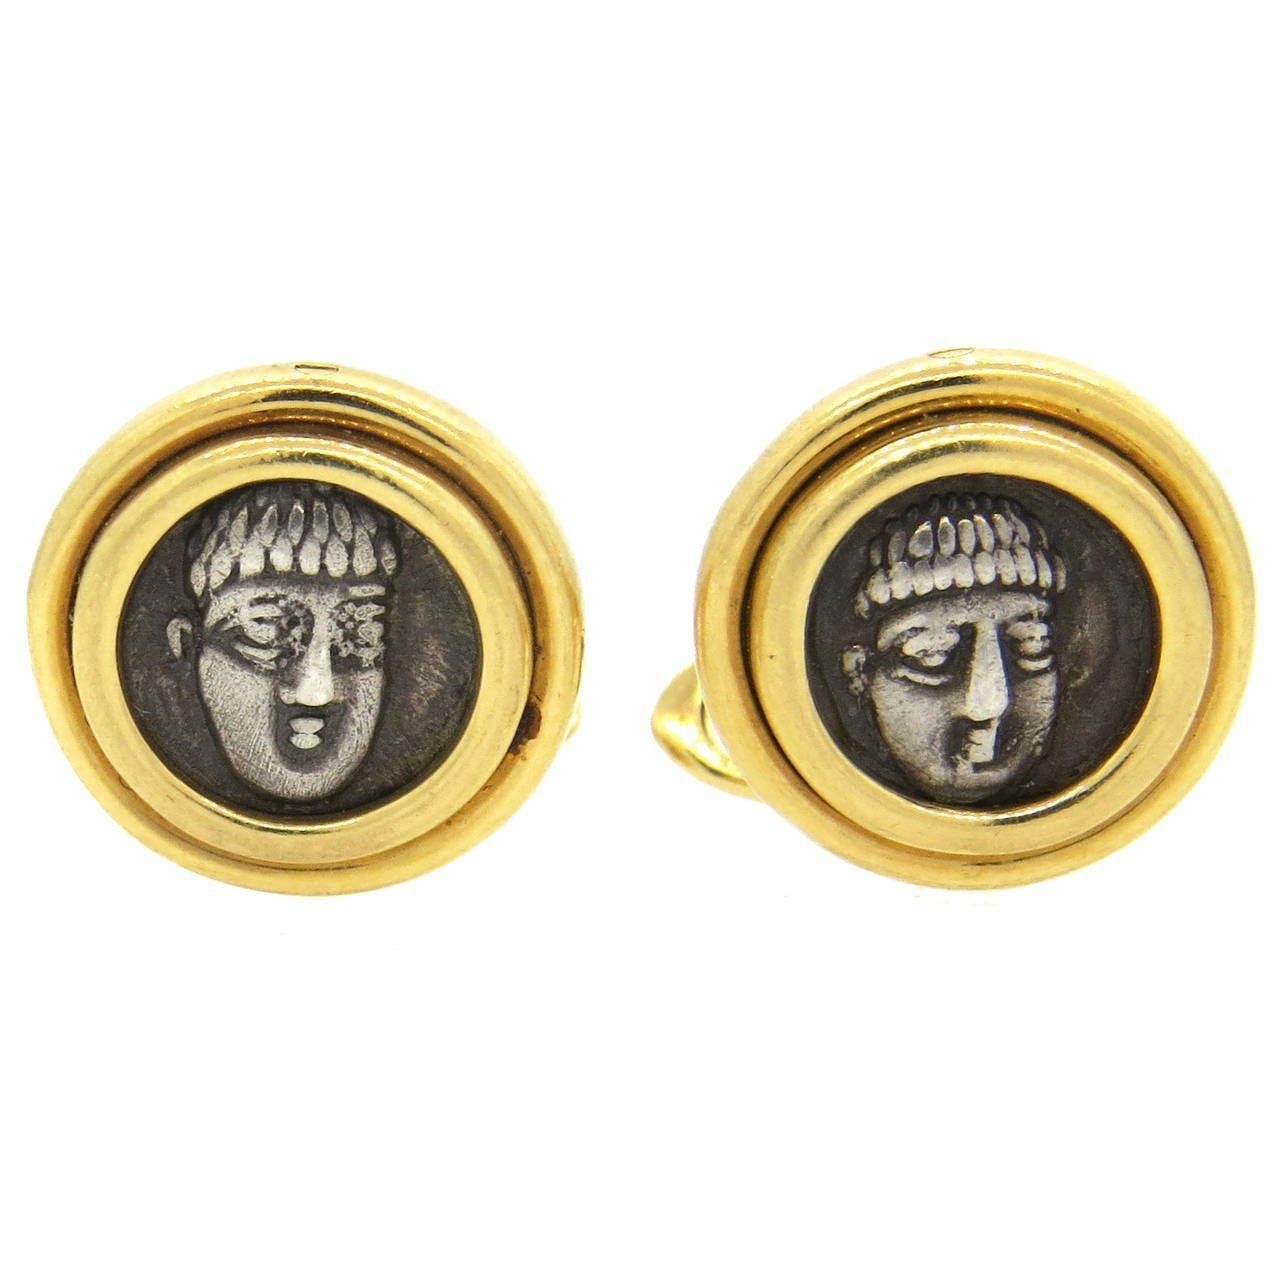 Bulgari campania phistelia iv ancient coin gold cufflinks coins